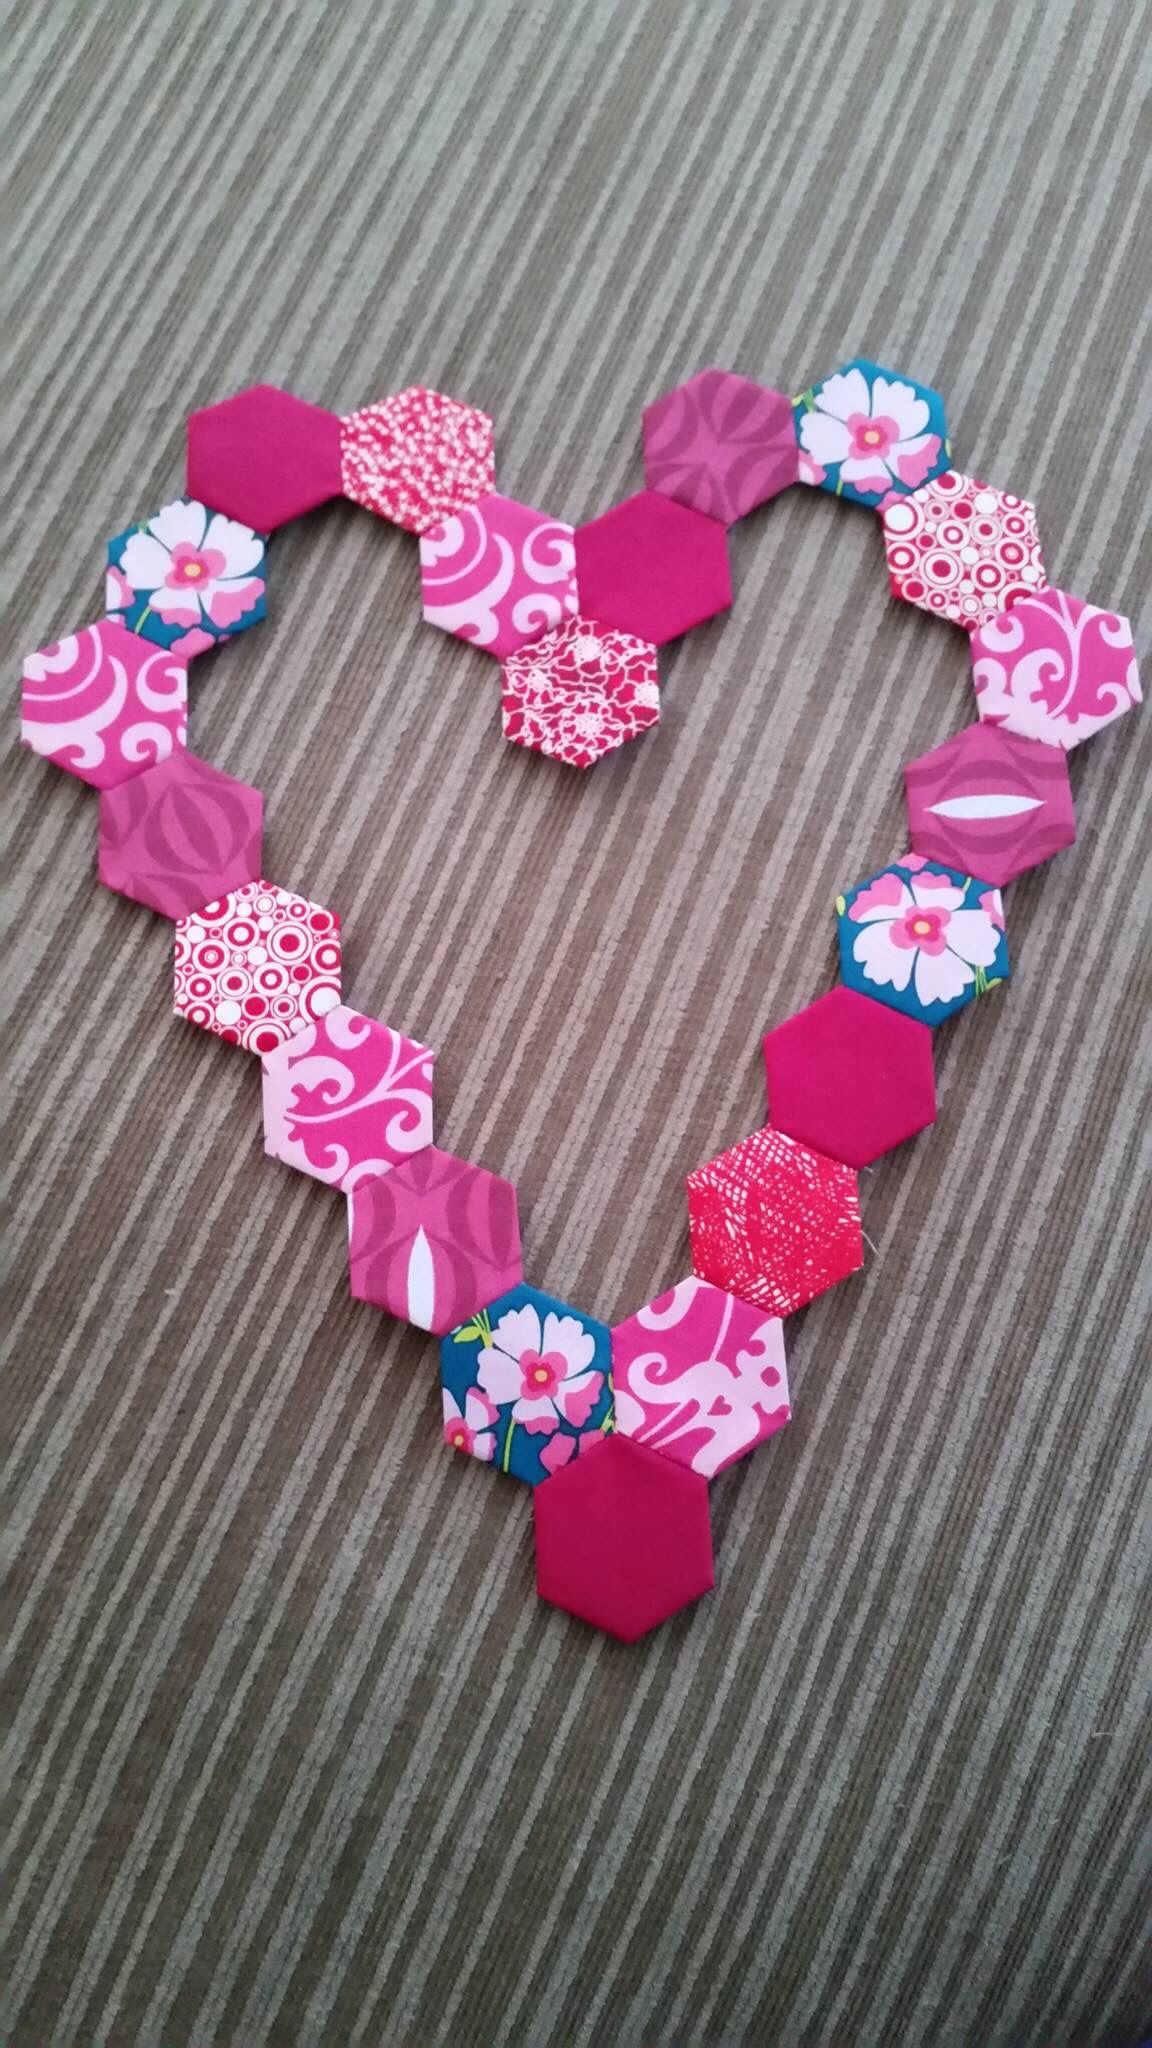 Love this idea I would fill the whole heart in with hexies though